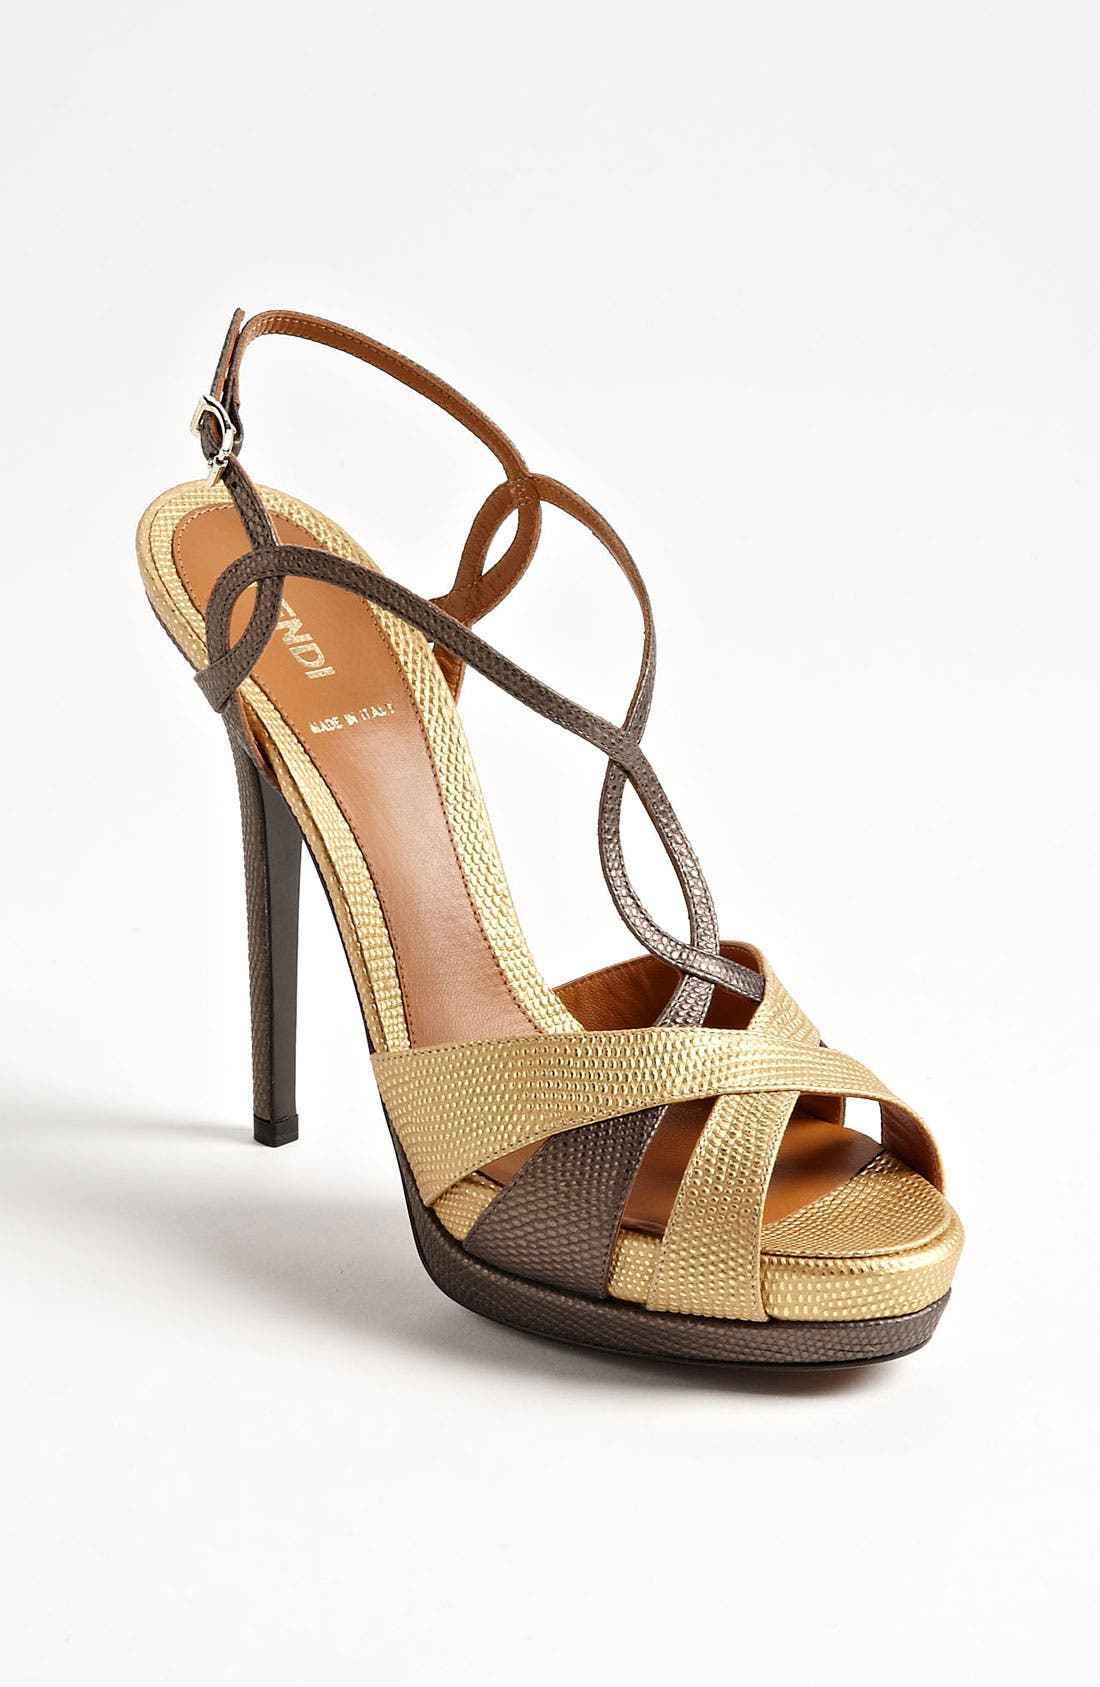 Main Image - Fendi 'Twisted' Platform Sandal